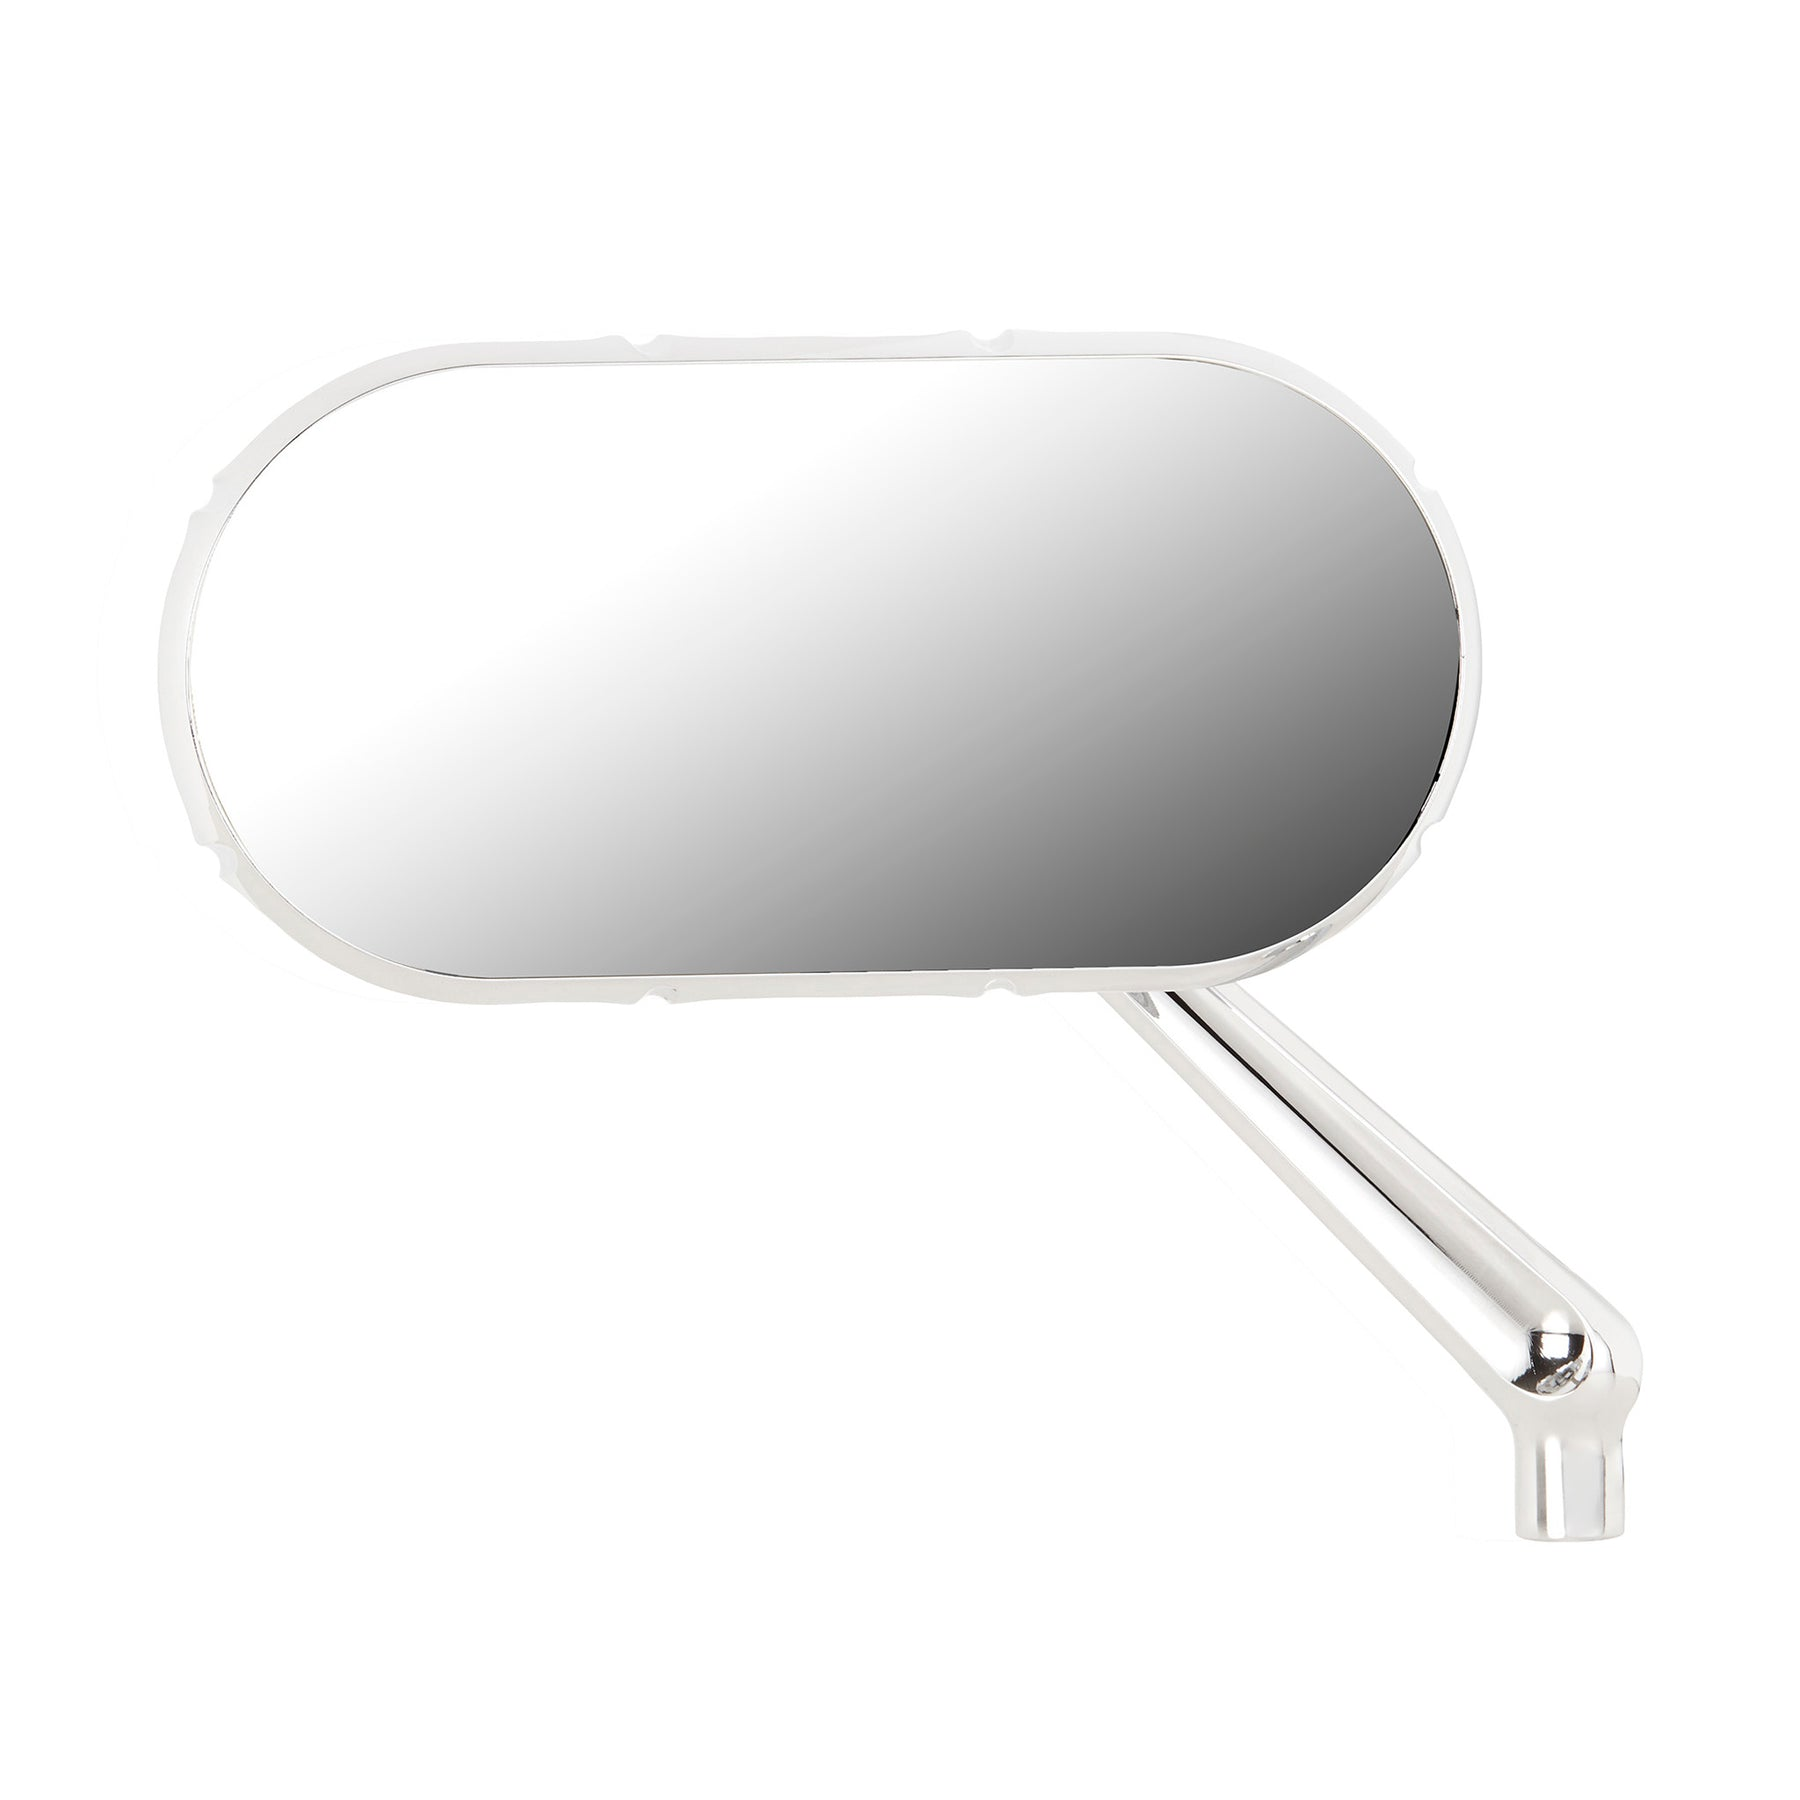 10-Gauge Forged Mirrors, Chrome